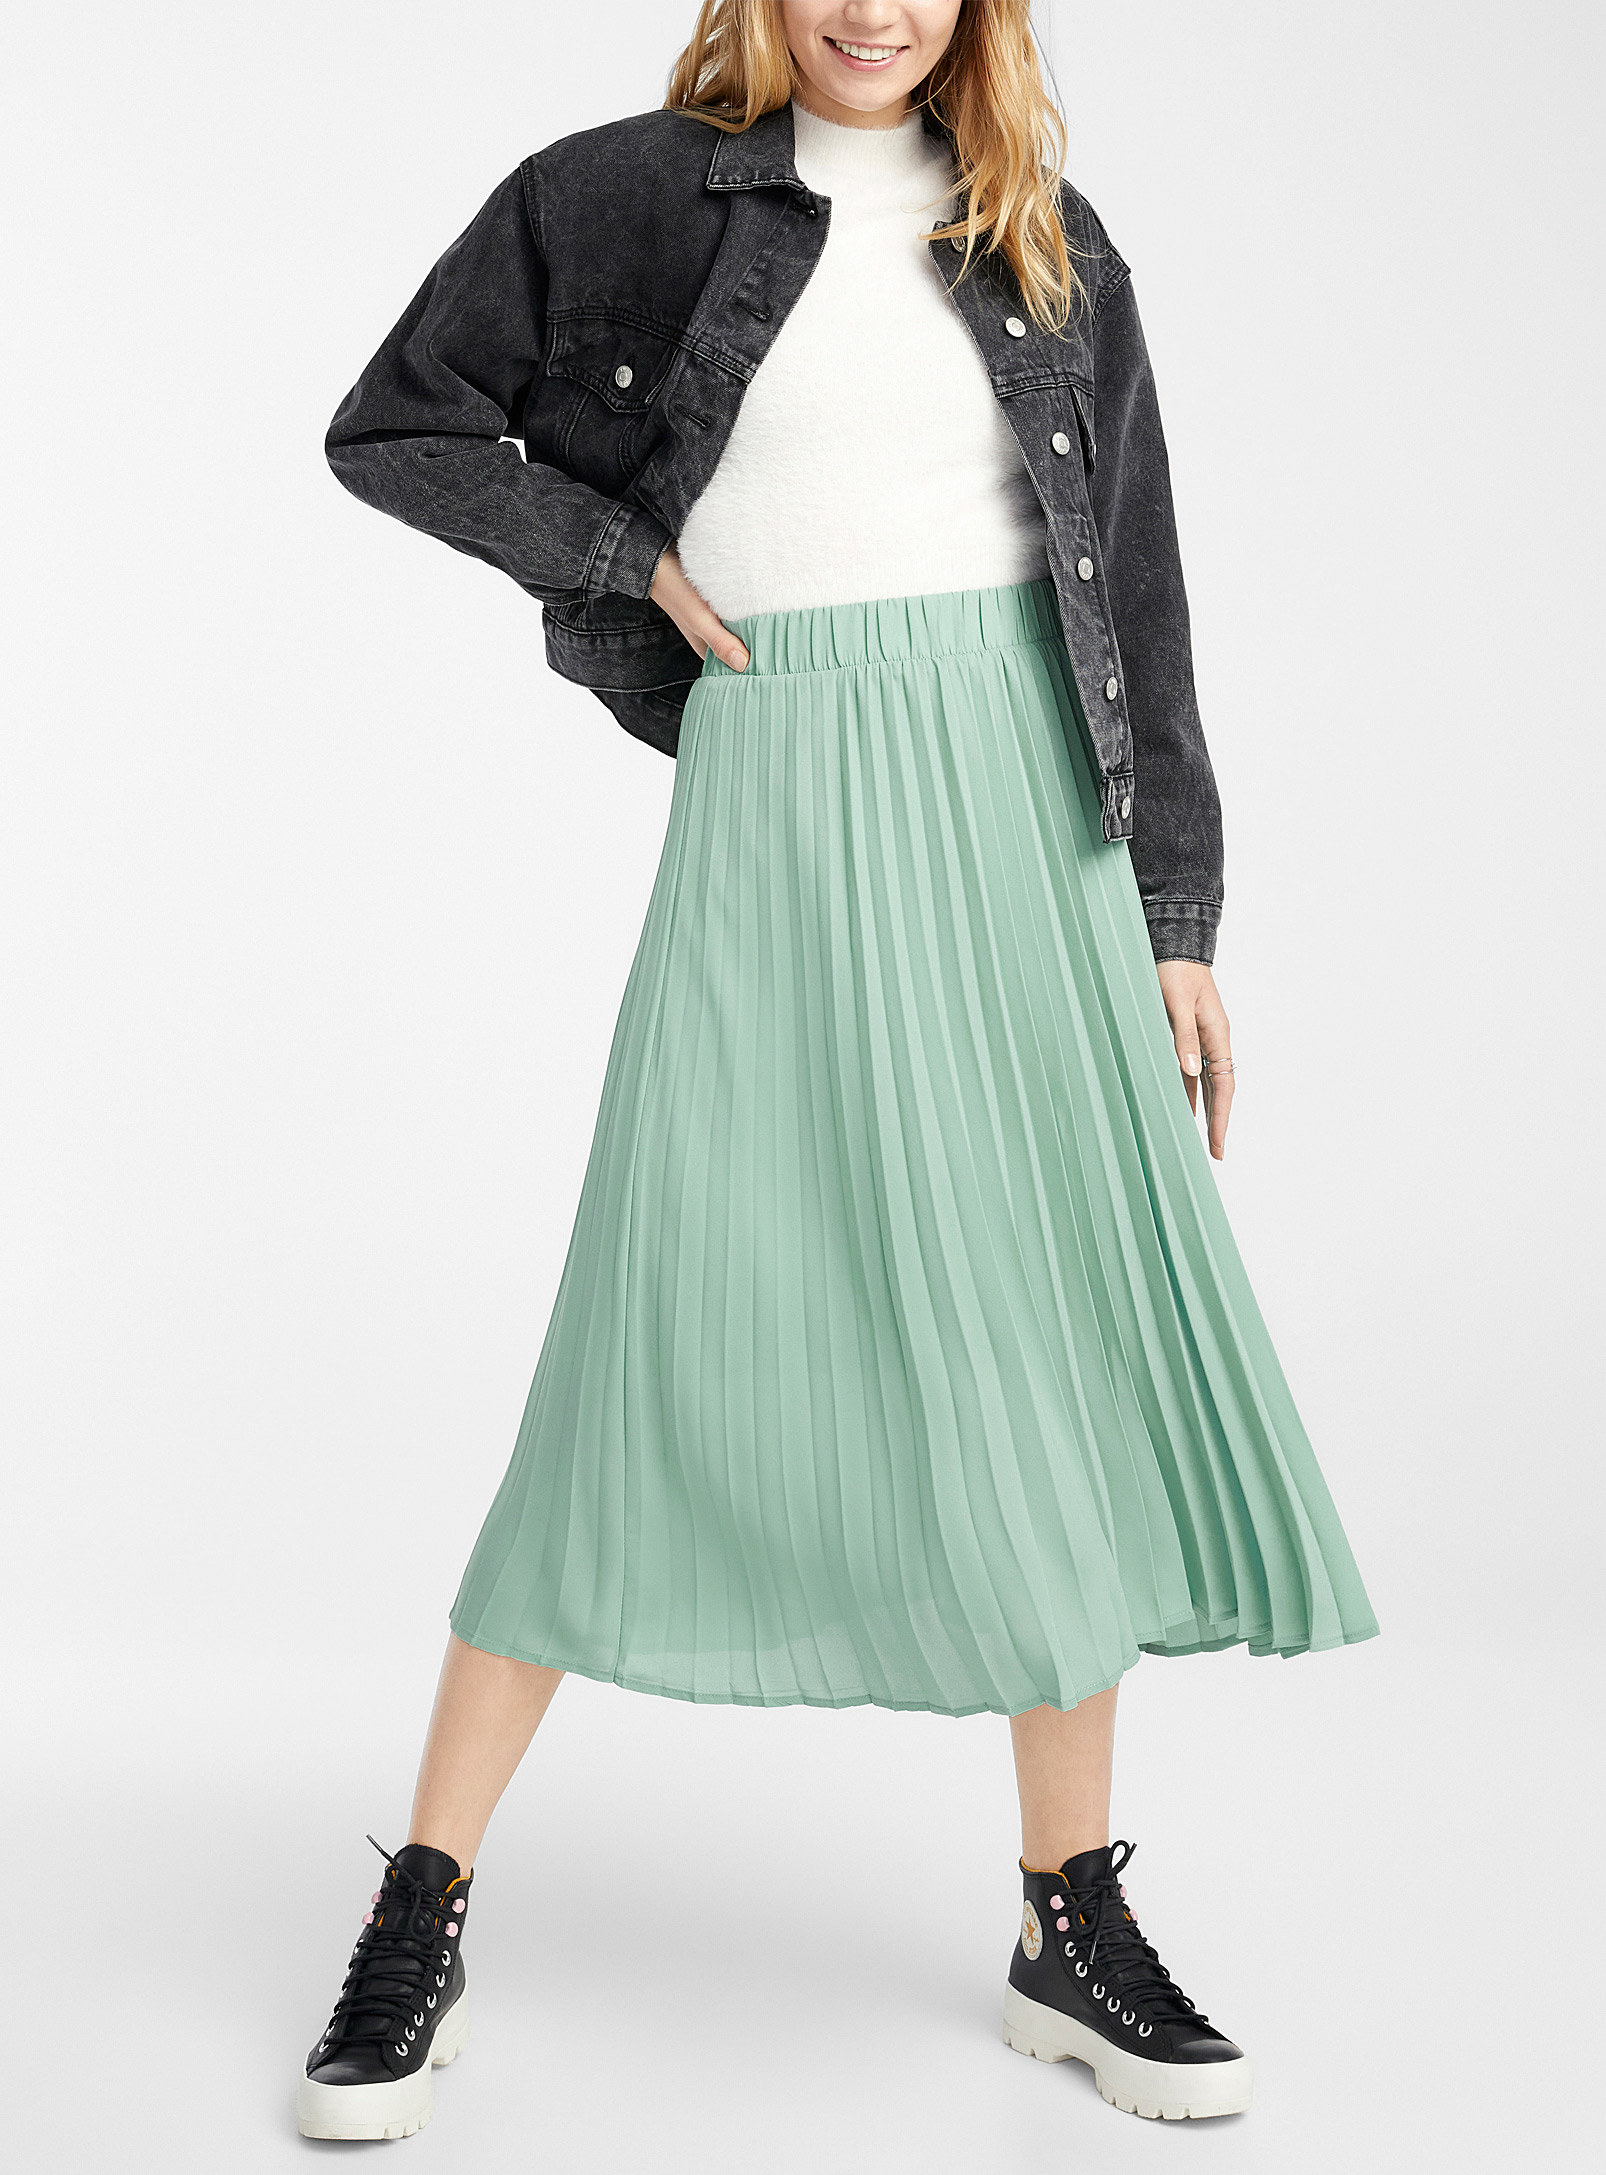 A person waring a long pleated skirt with combat boots